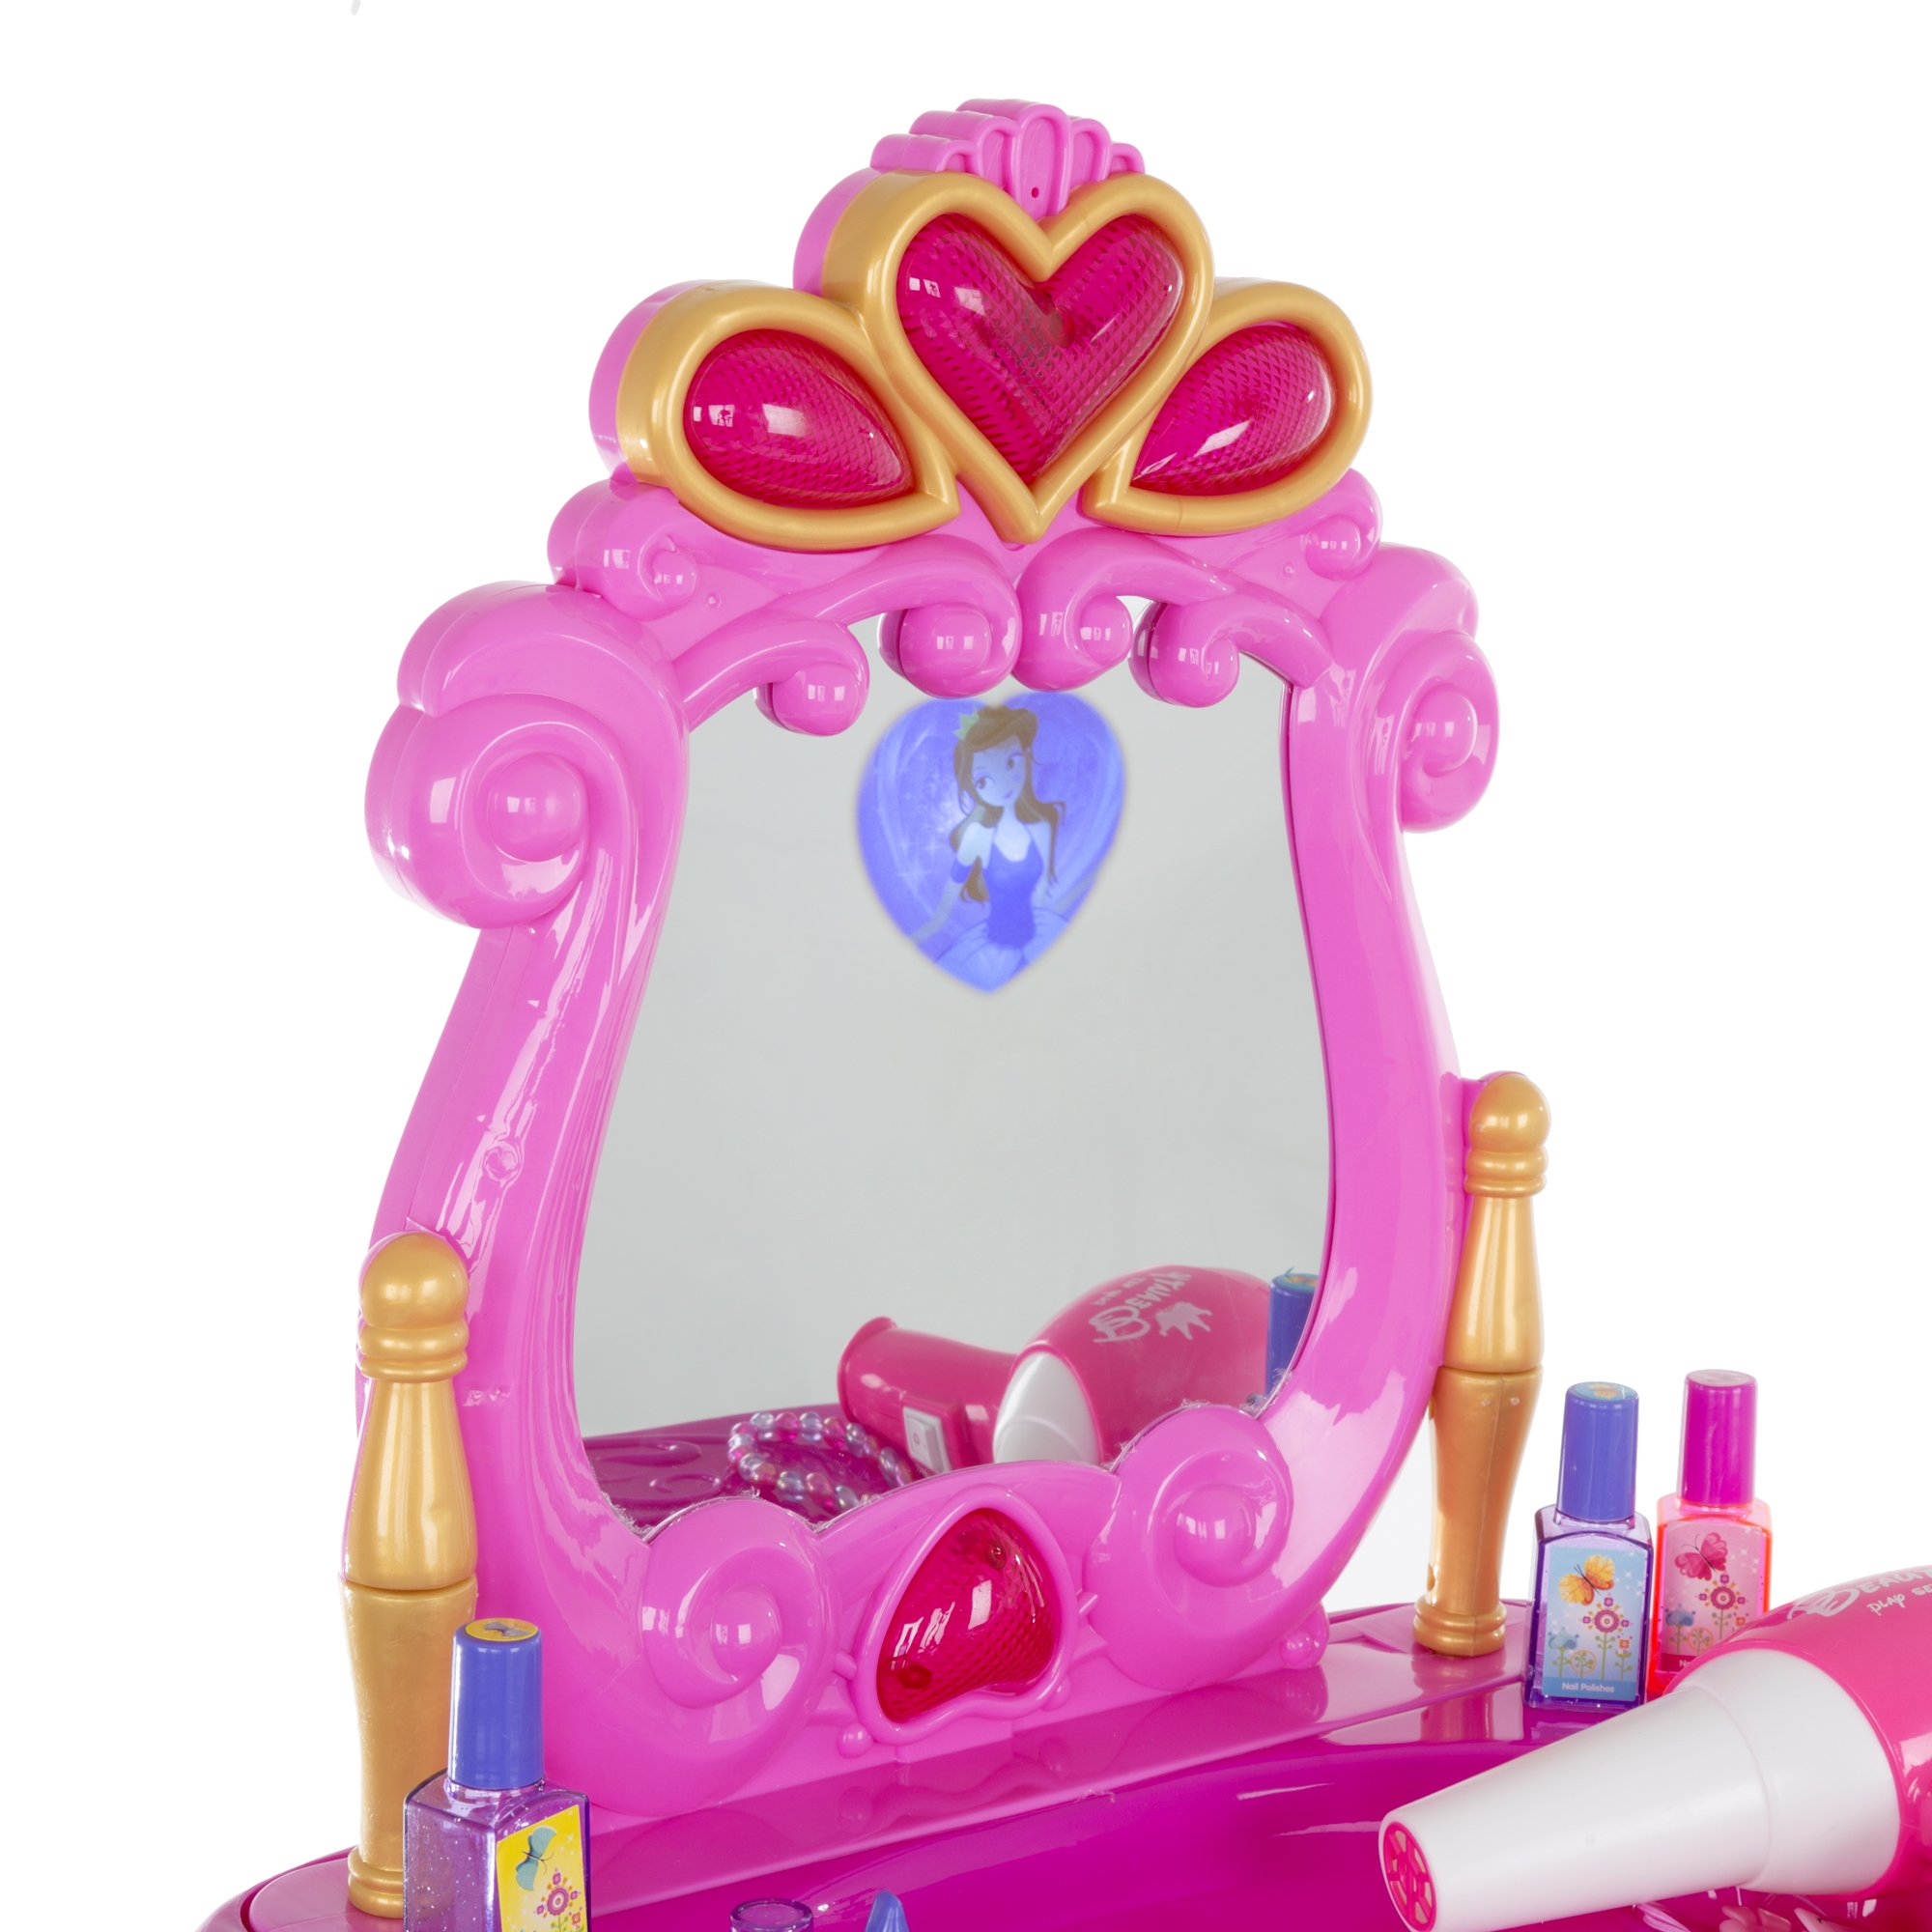 Deluxe Princess Vanity Set with Stool, Accessories, Lights, & Sound - 17 Peice Pretend Play Set! by Deluxe (Image #2)